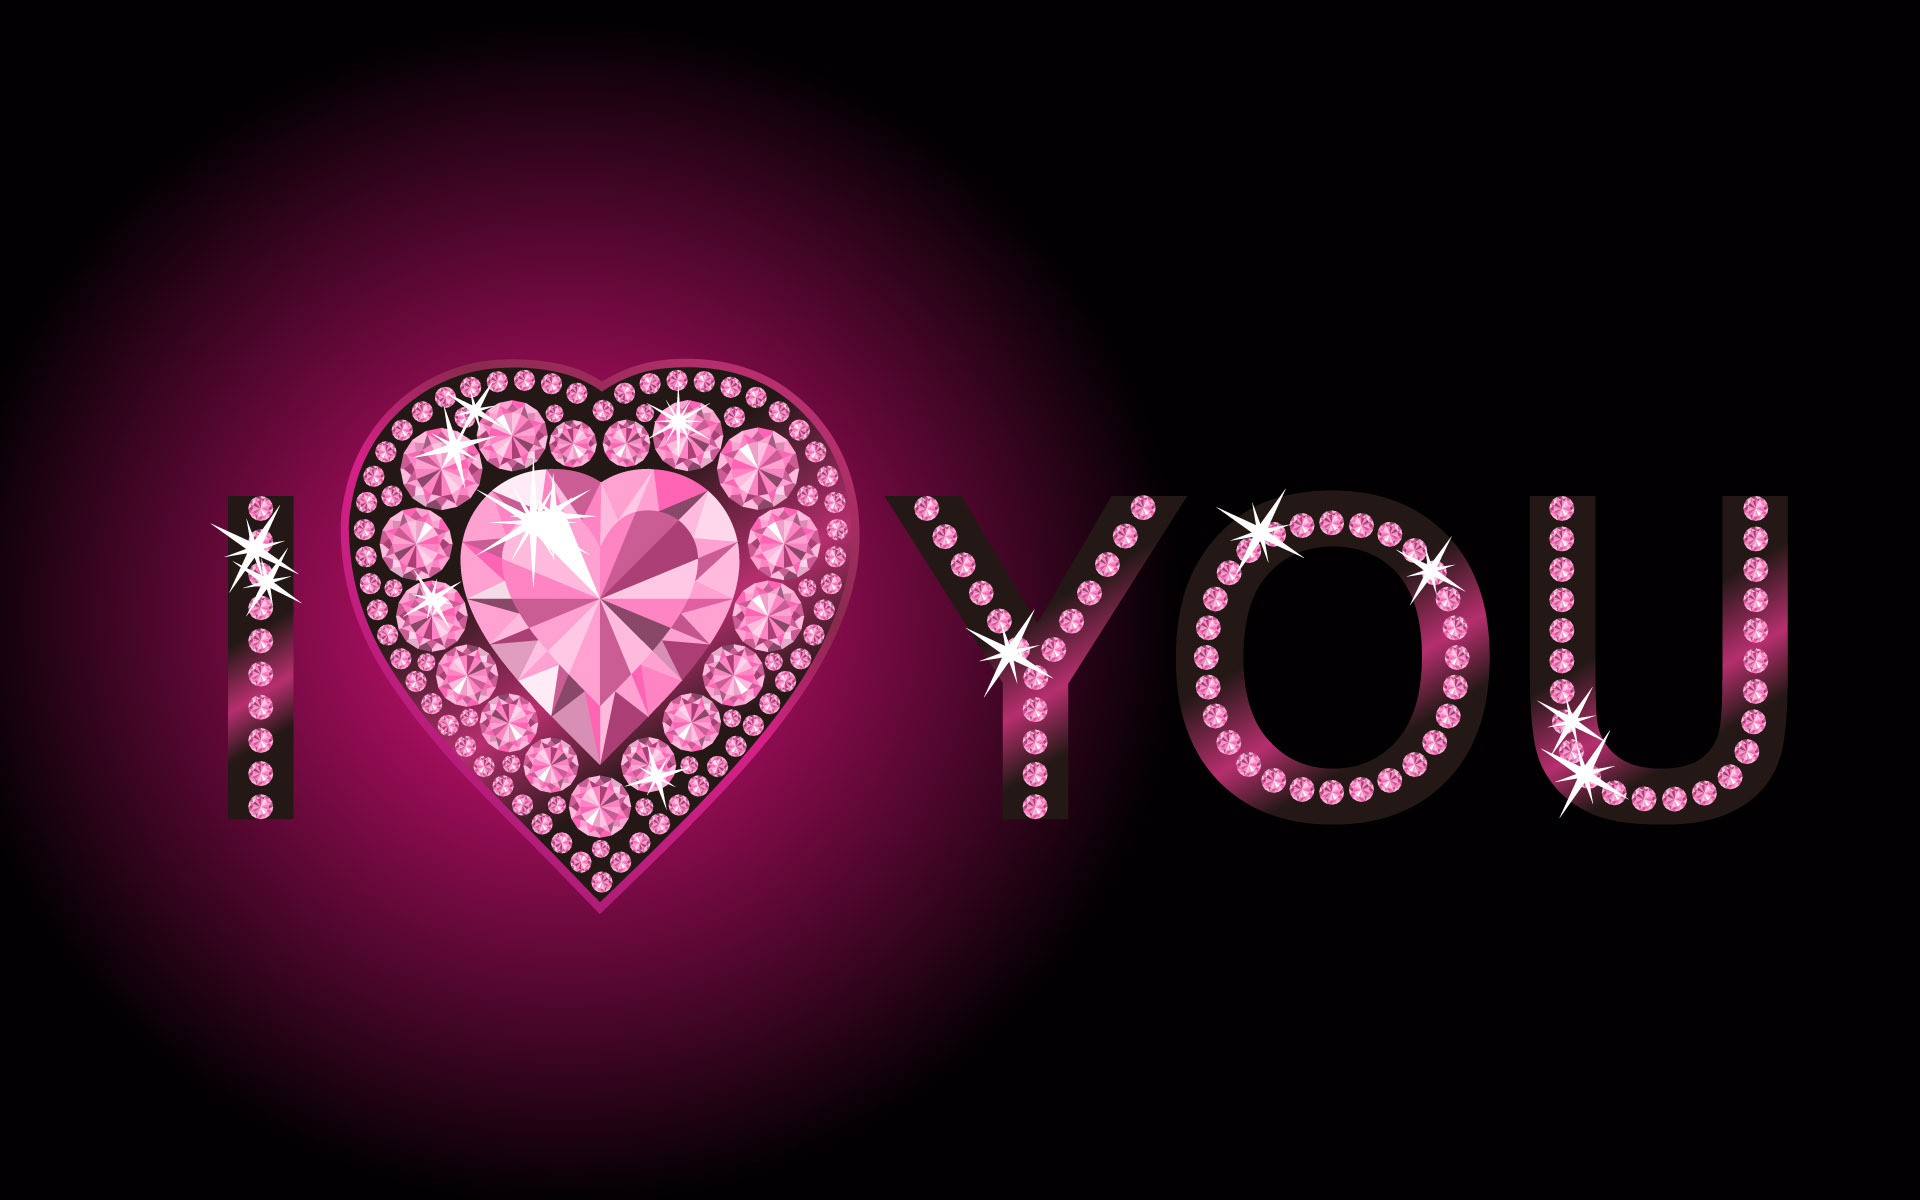 I Love You Desktop Wallpaper - Wallpaper, High Definition, High Quality, Widescreen